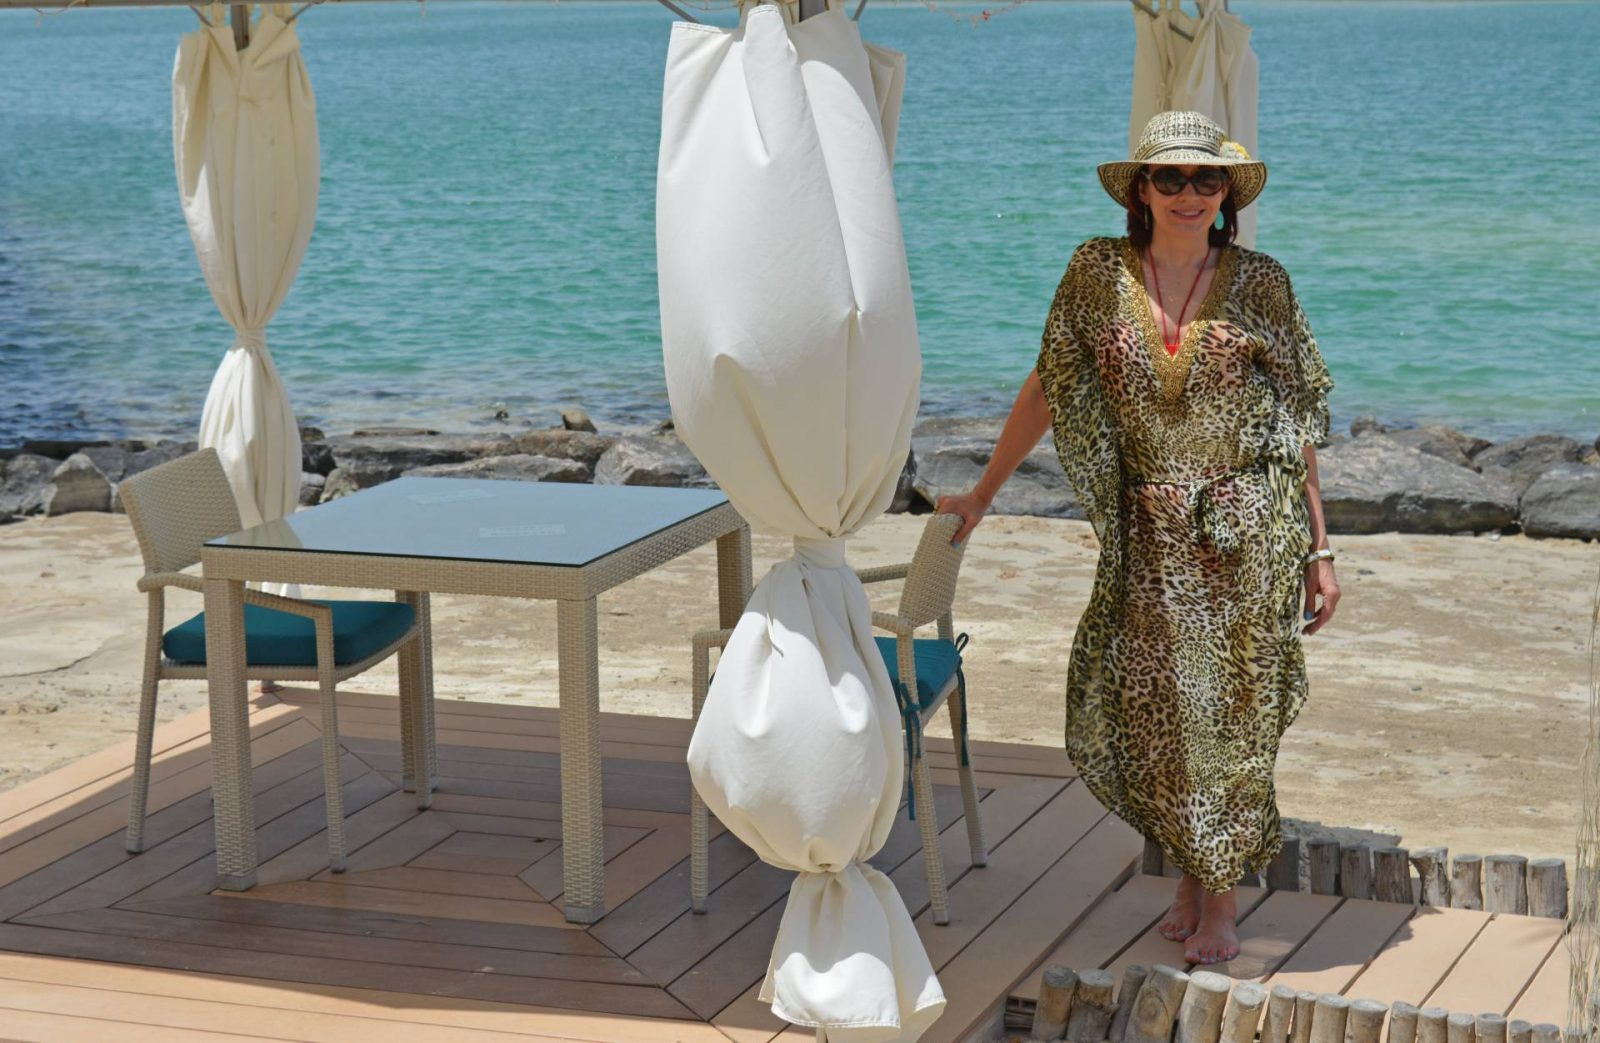 Poolside Glamour With Miss Tunica, Mondello leopard print tunic